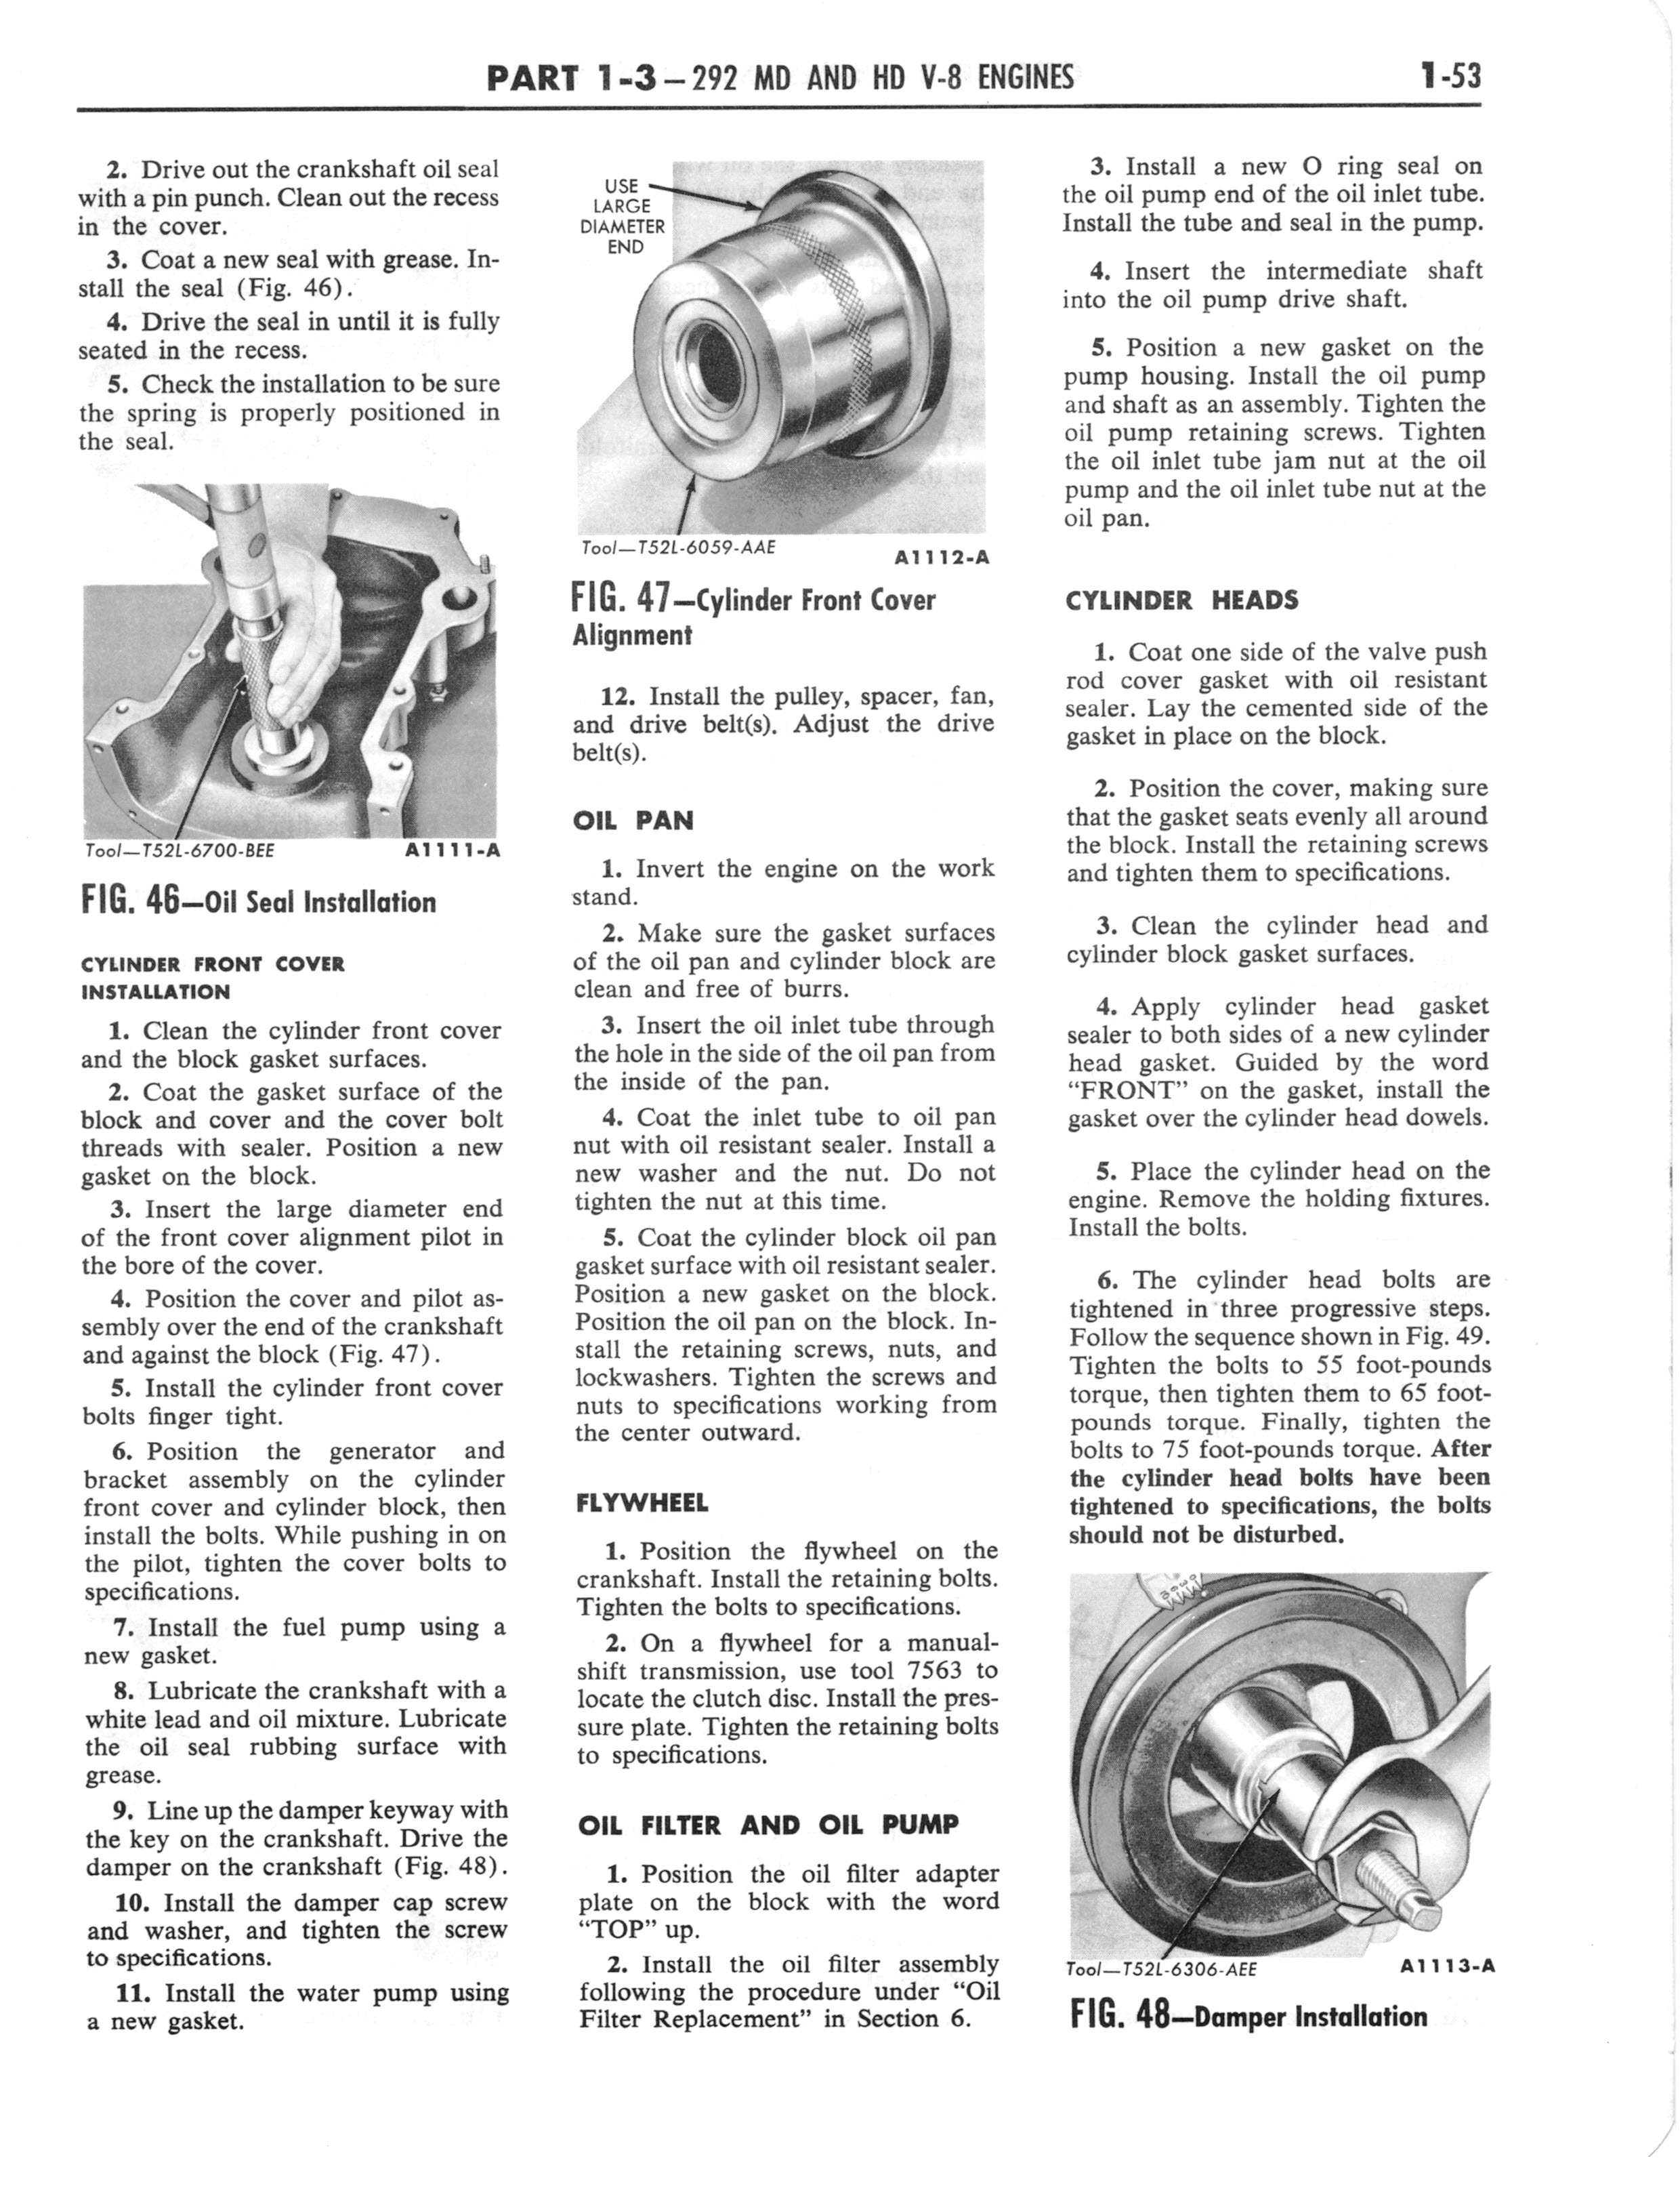 1960 Ford and Mercury Truck Shop Manual page 62 of 641